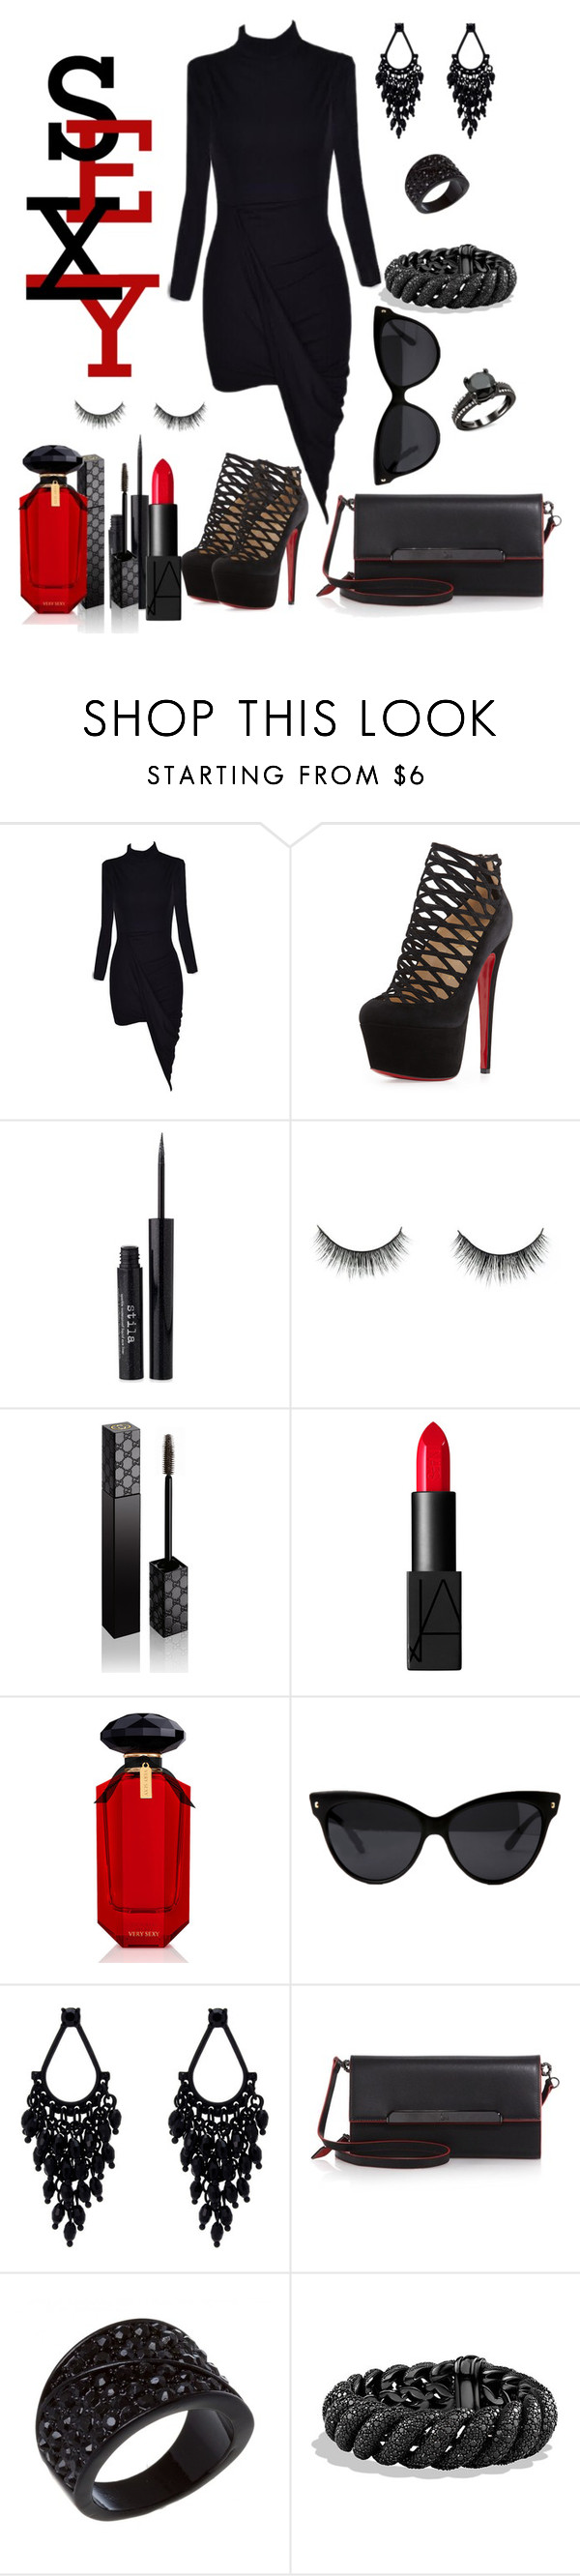 """""""Untitled #348"""" by fasttrack2fashion ❤ liked on Polyvore featuring Christian Louboutin, Stila, Gucci, NARS Cosmetics, Victoria's Secret, Oasis and David Yurman"""